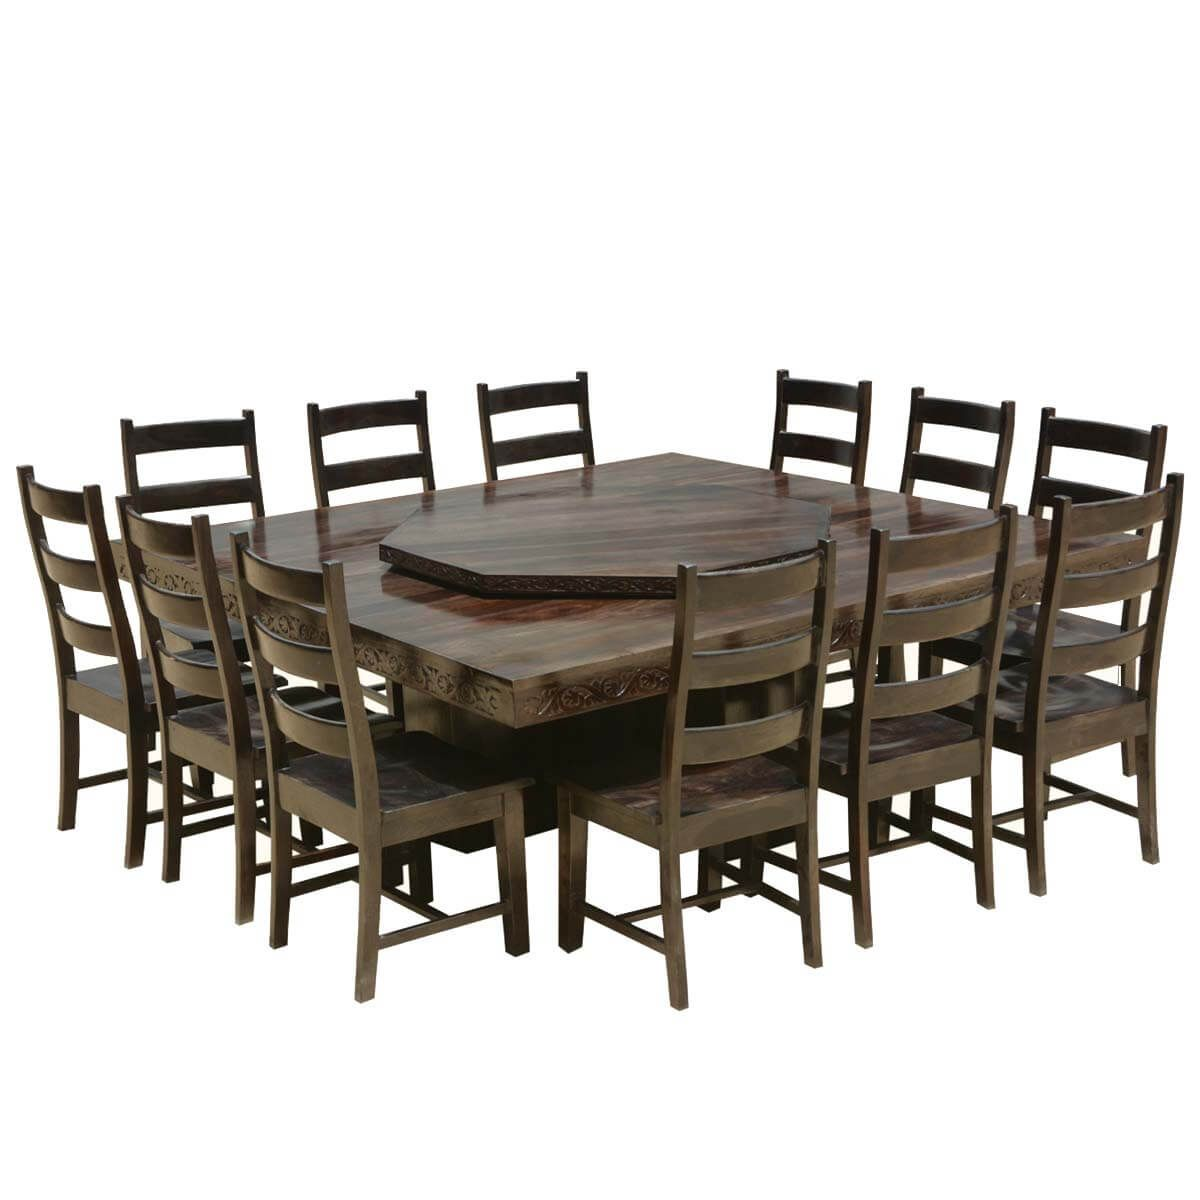 Modern Pioneer Solid Wood Lazy Susan Pedestal Dining Table Chair Set In 2021 Large Square Dining Table Large Dining Room Table Slab Dining Tables Lazy susans for dining tables